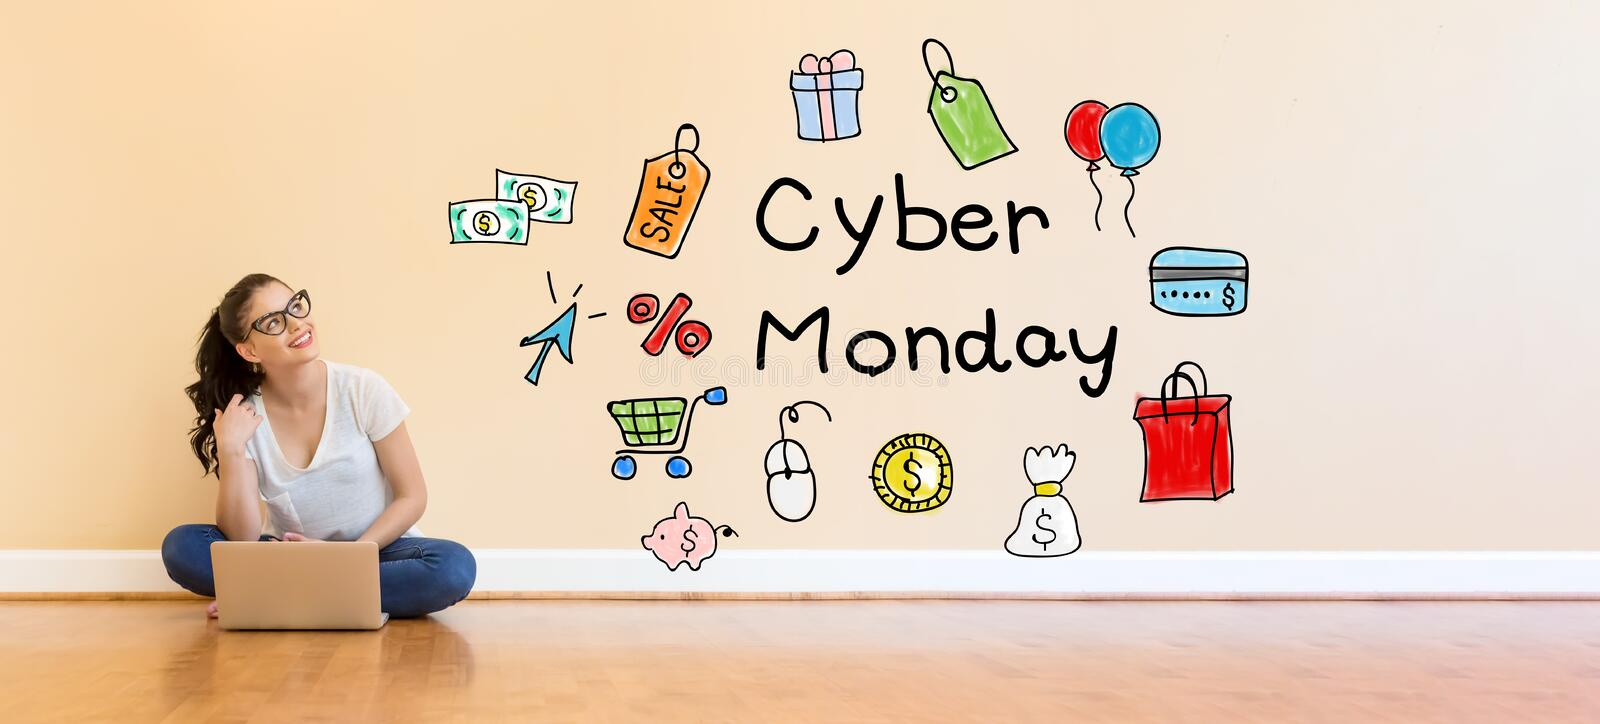 Cyber Monday text with young woman using a laptop computer royalty free stock photos